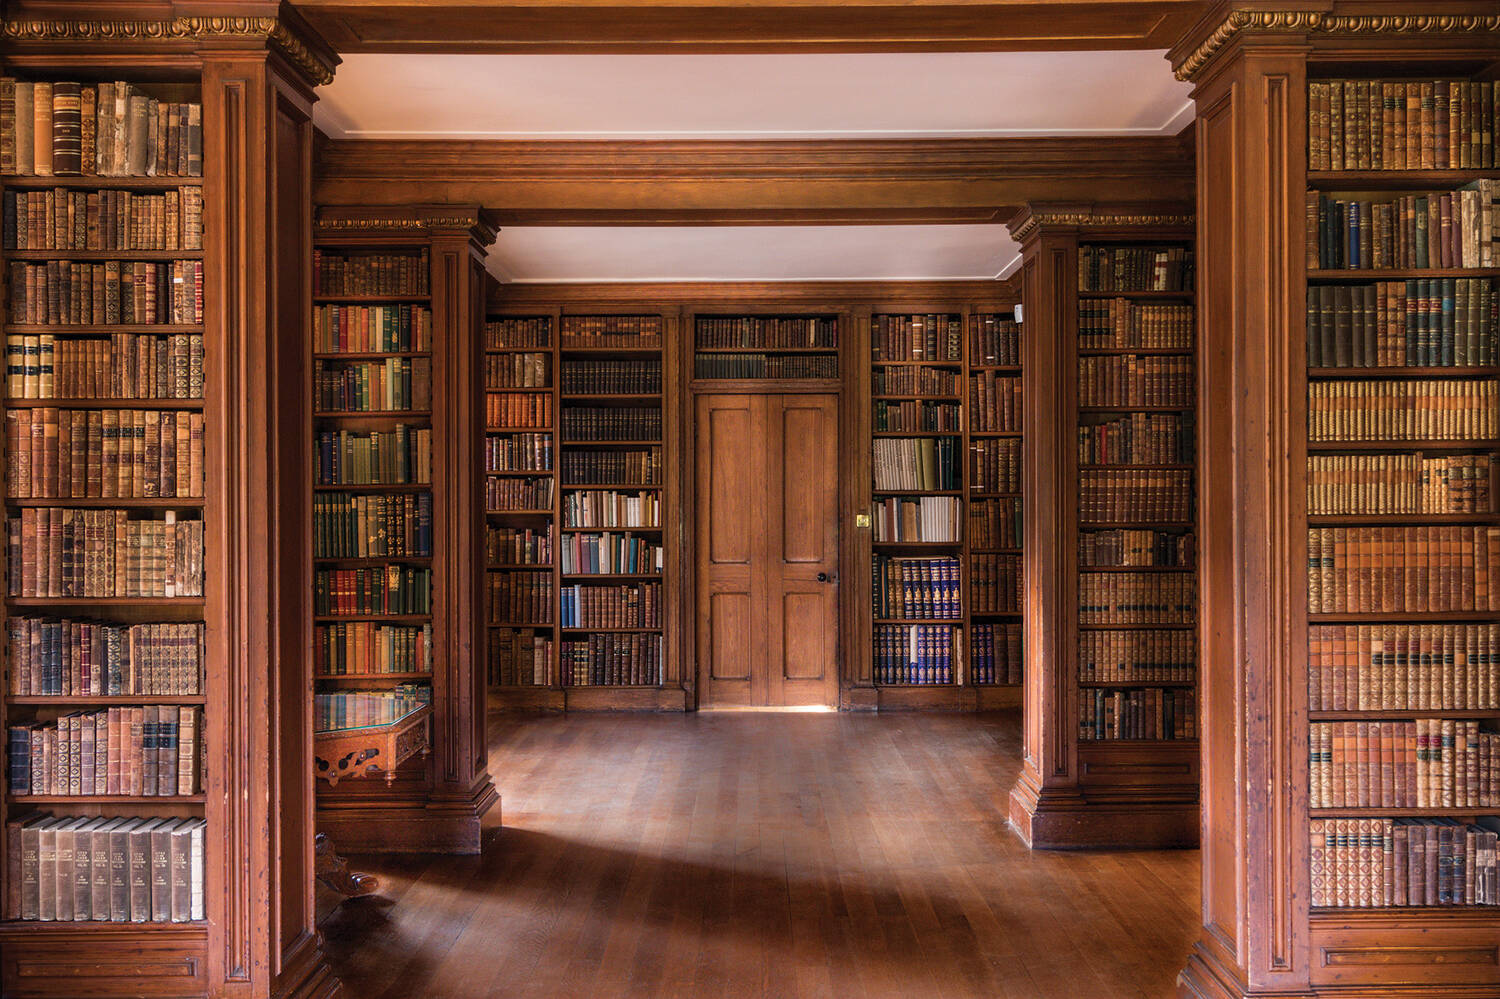 Books on shelves in Brodie Castle library